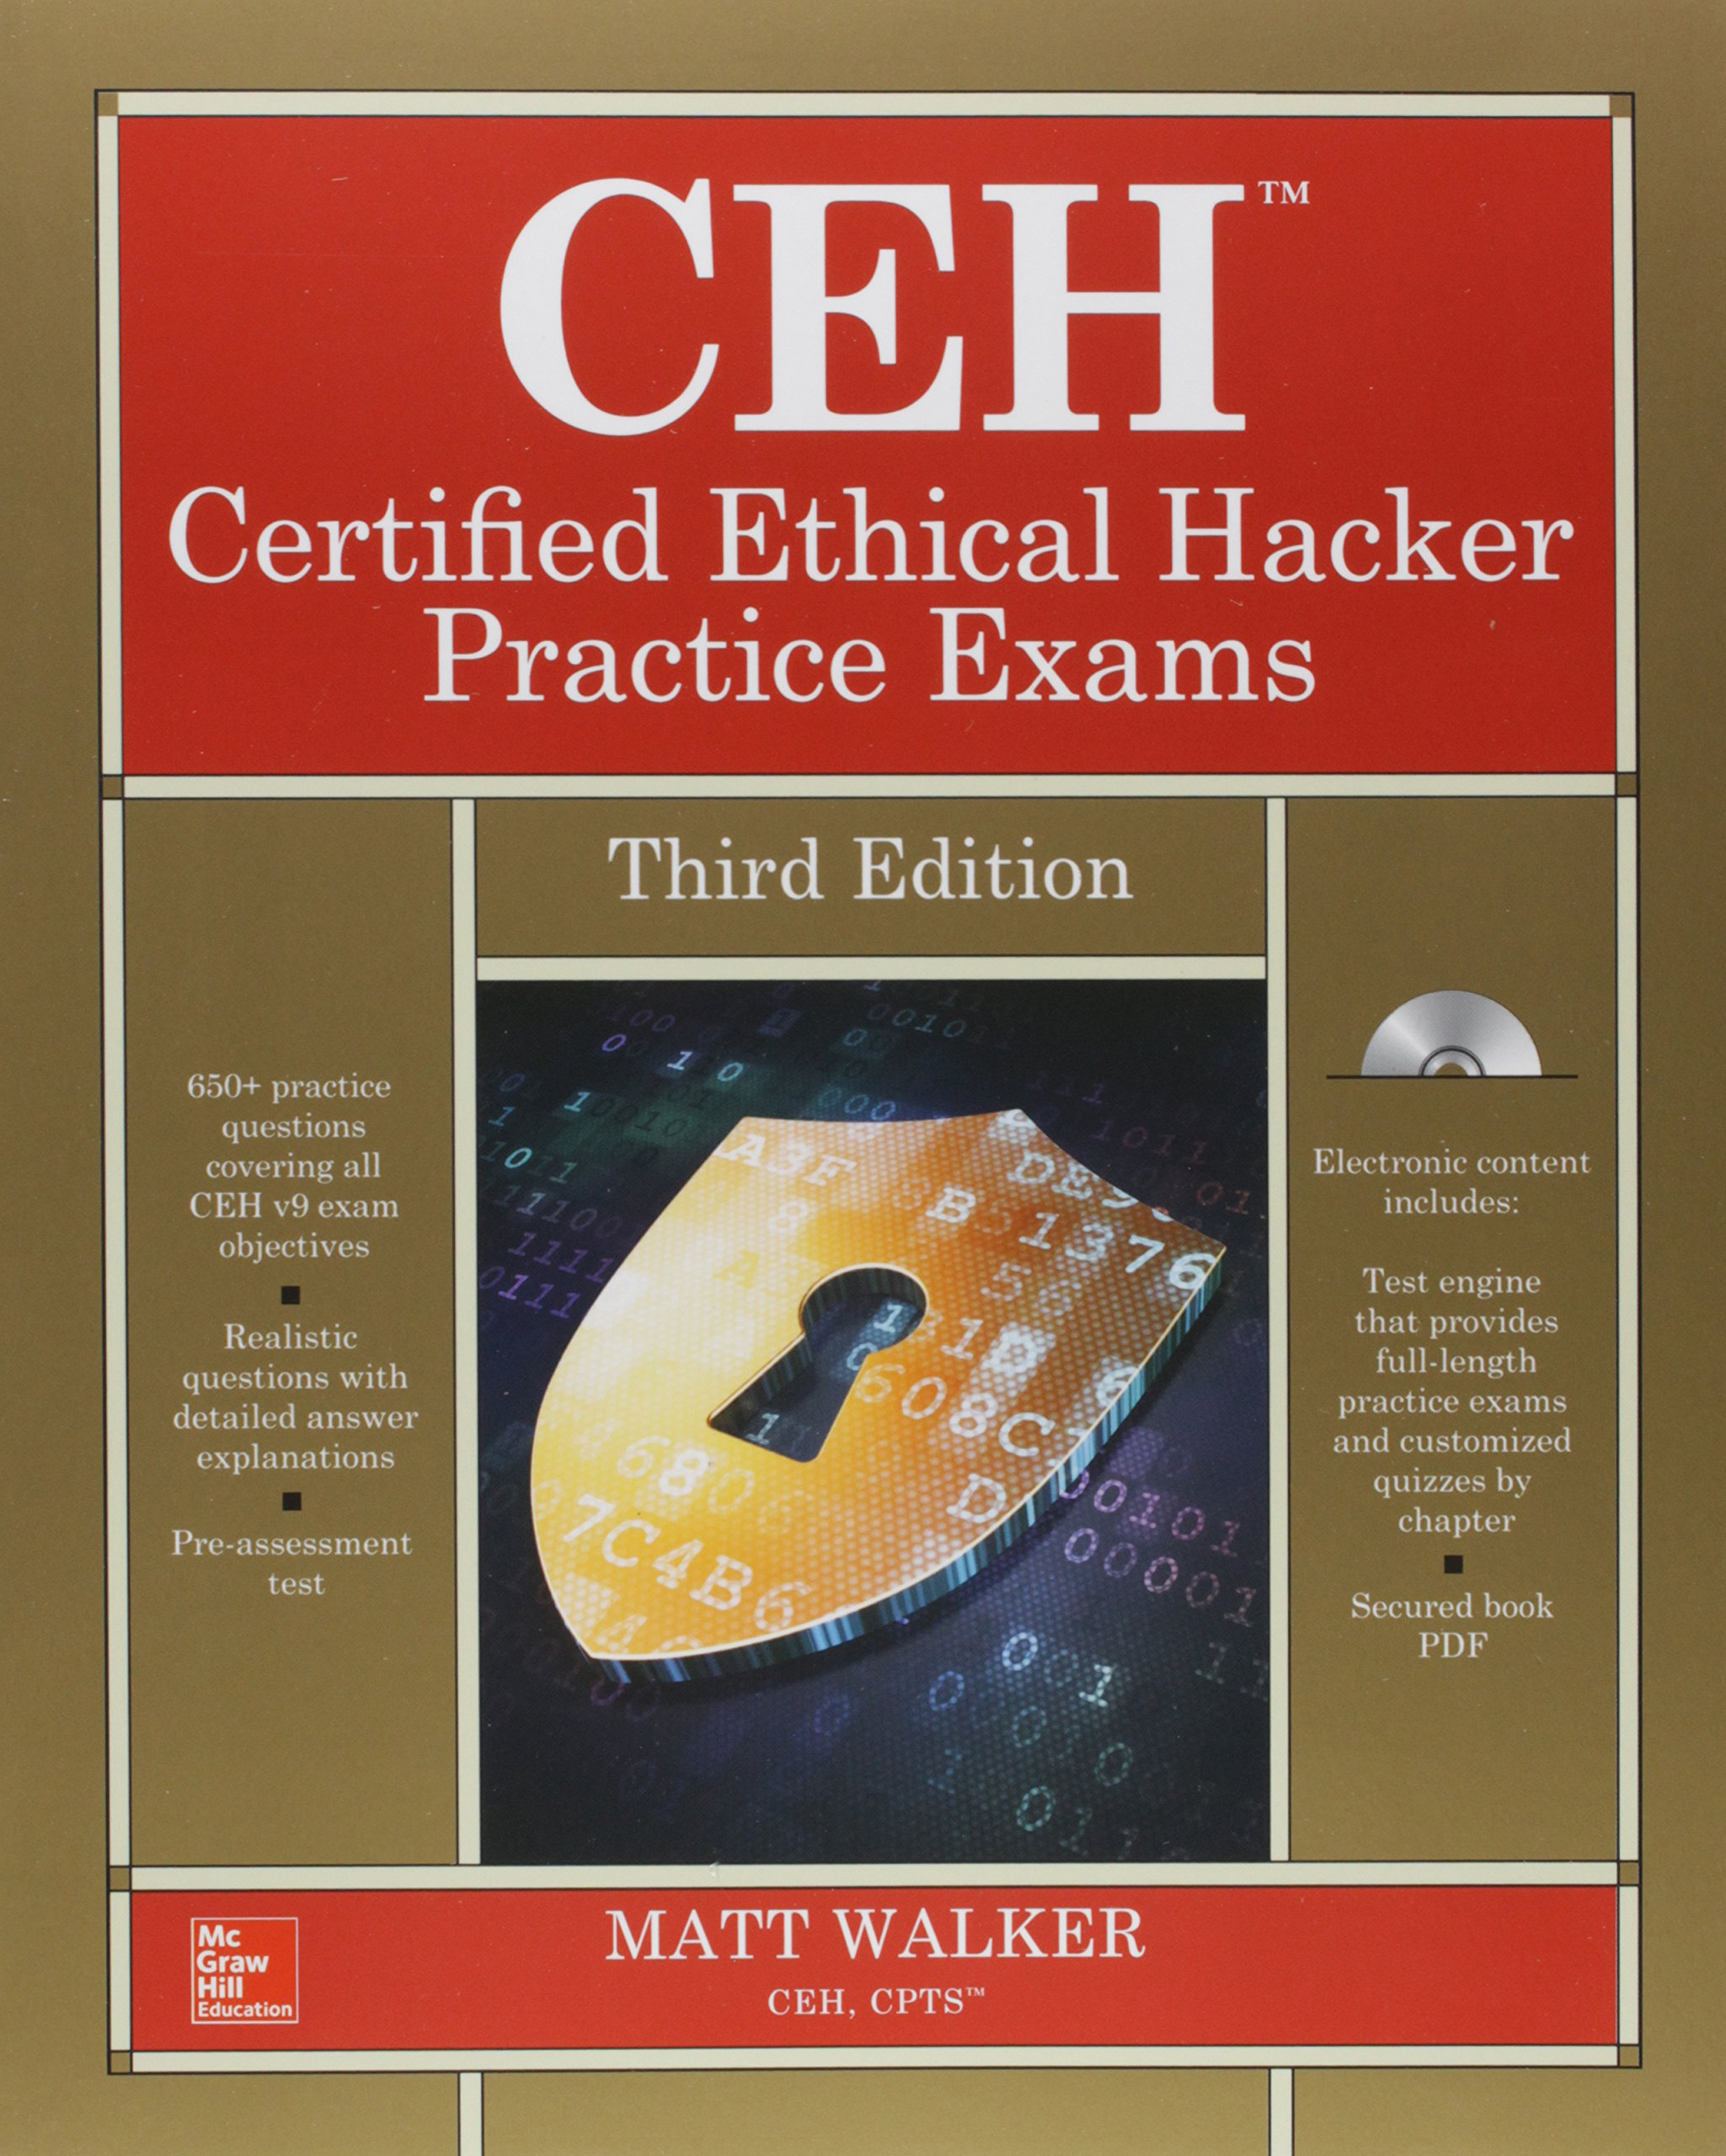 Ceh certified ethical hacker bundle third edition all in one ceh certified ethical hacker bundle third edition all in one amazon matt walker 9781259837531 books xflitez Image collections